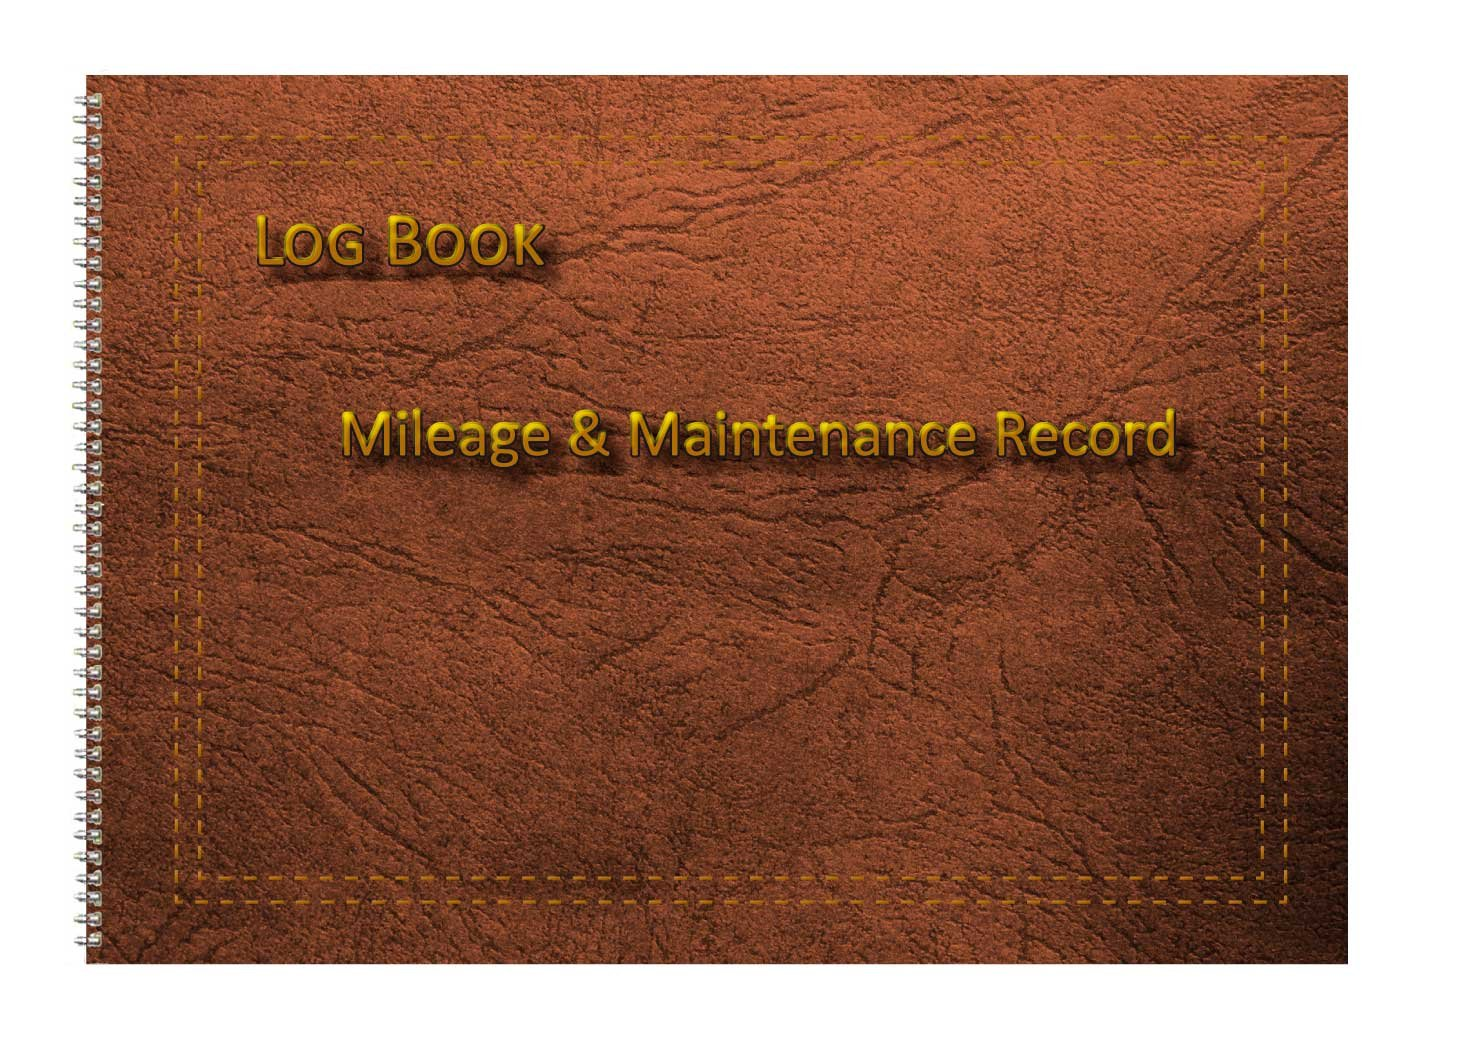 A5 8 by 6 Purple Print Effect Cover Vehicle Mileage Log Book